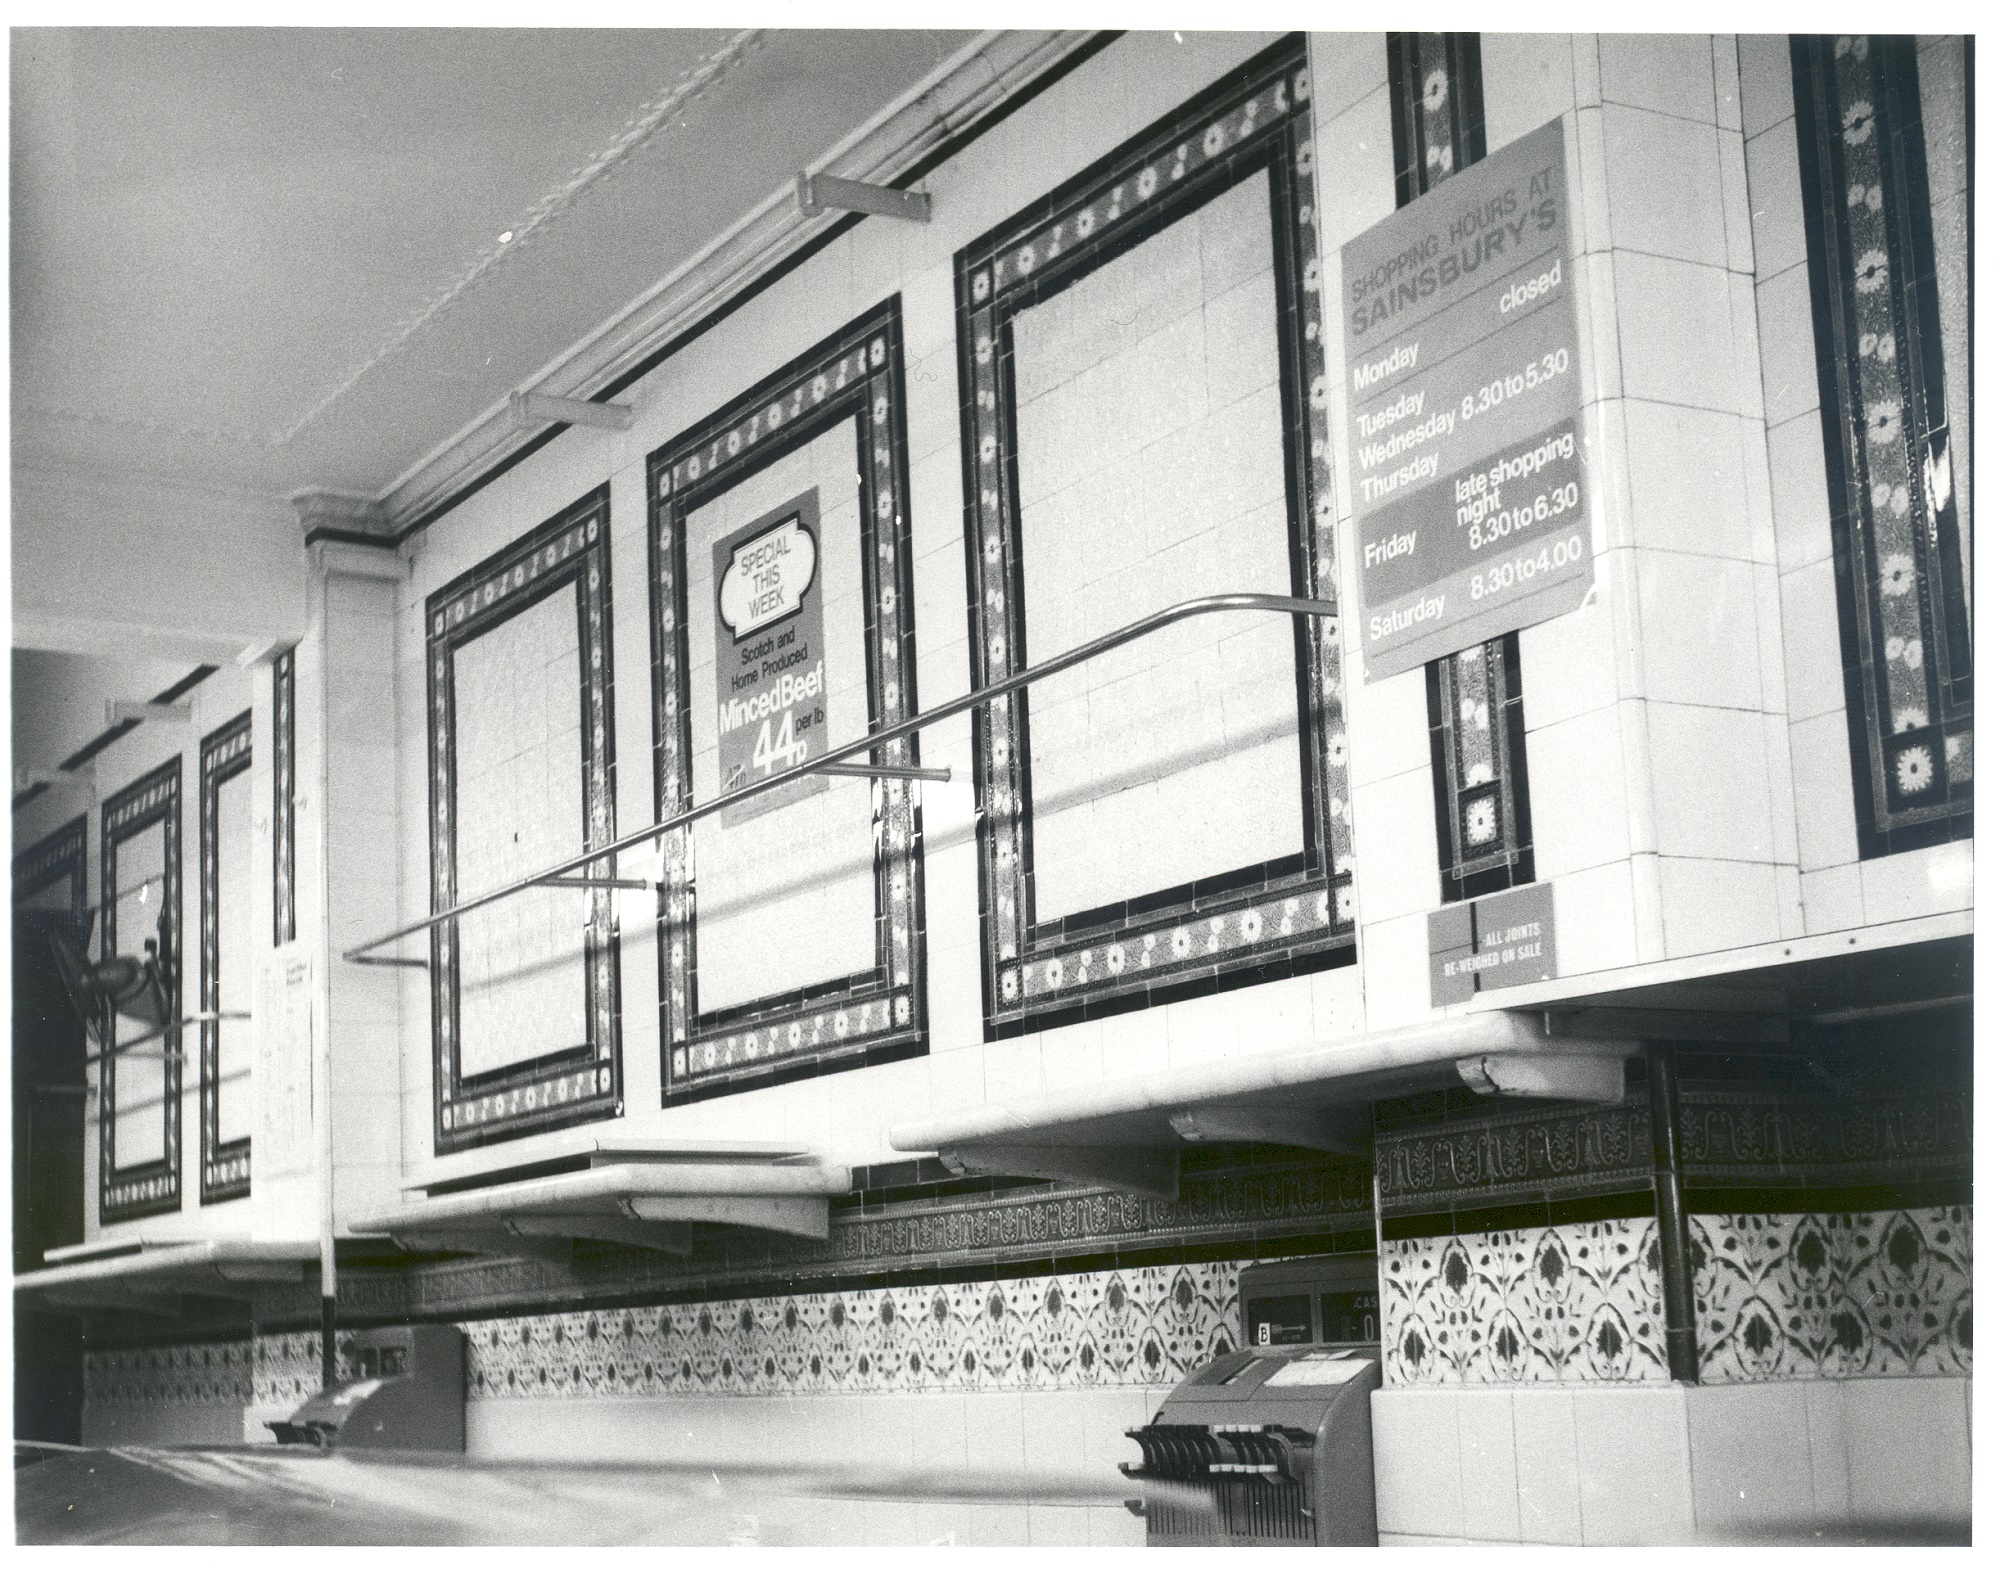 Photograph of J. Sainsbury's shop in Weybridge c.1970s, showing cleared shelves and counters with 2 cash registers at the back.